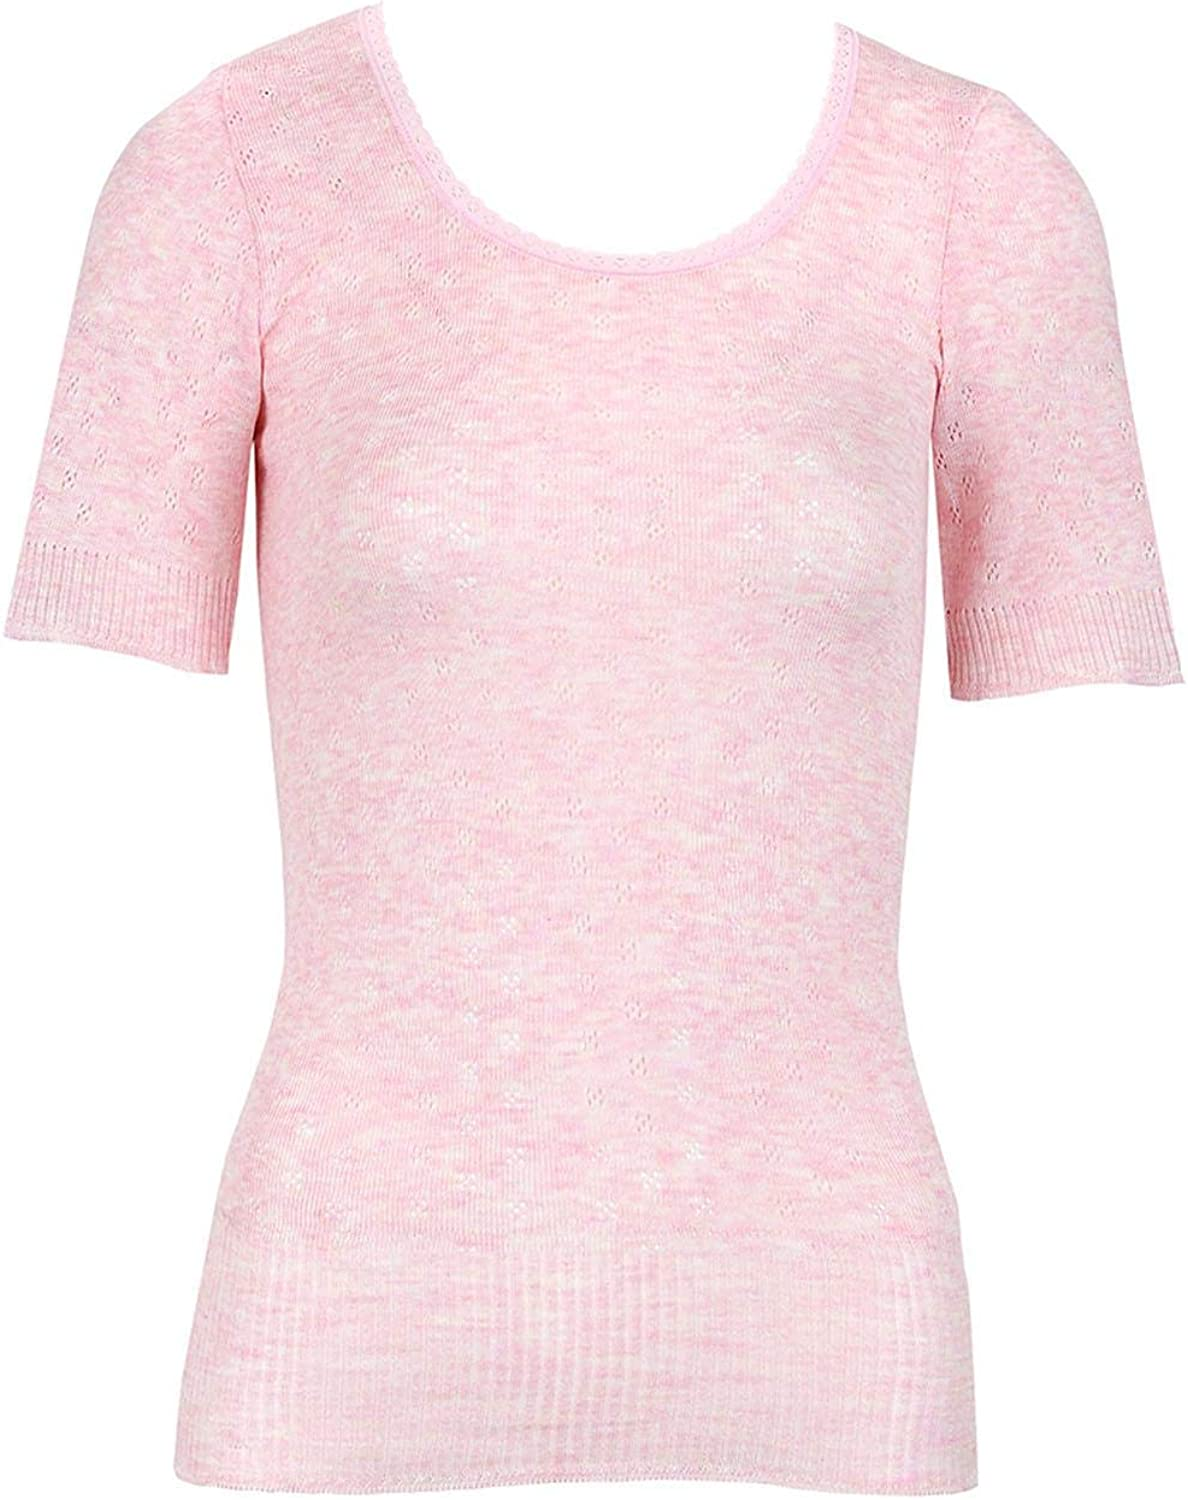 Frooty Ladies Thermal Vest Short Sleeve Spencer Womens Cosy Warm Stretch Breathable Underwear Lingerie UK Size 10-14